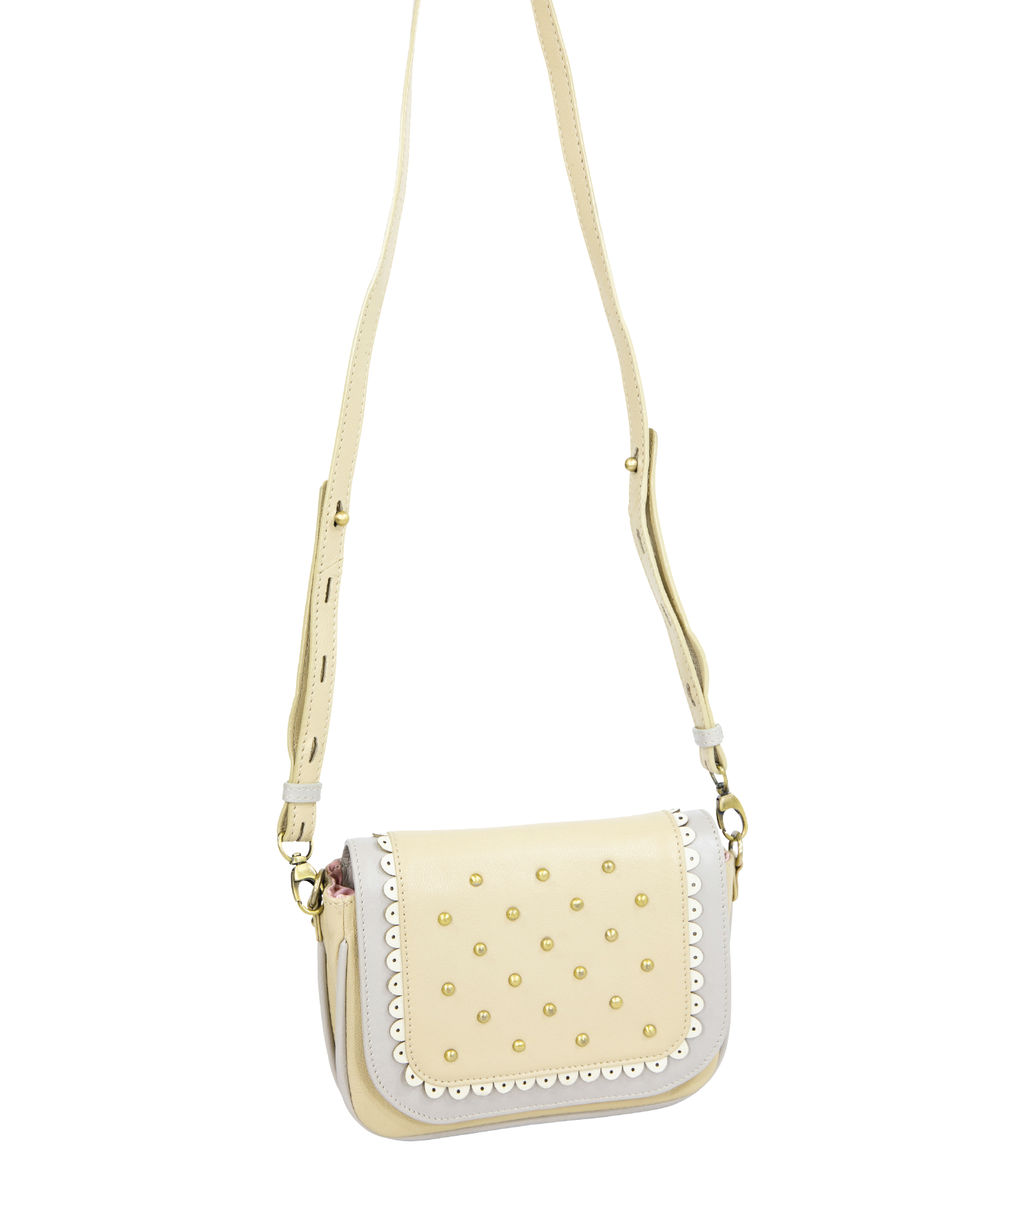 LILY Mini Crossbody - Nougat